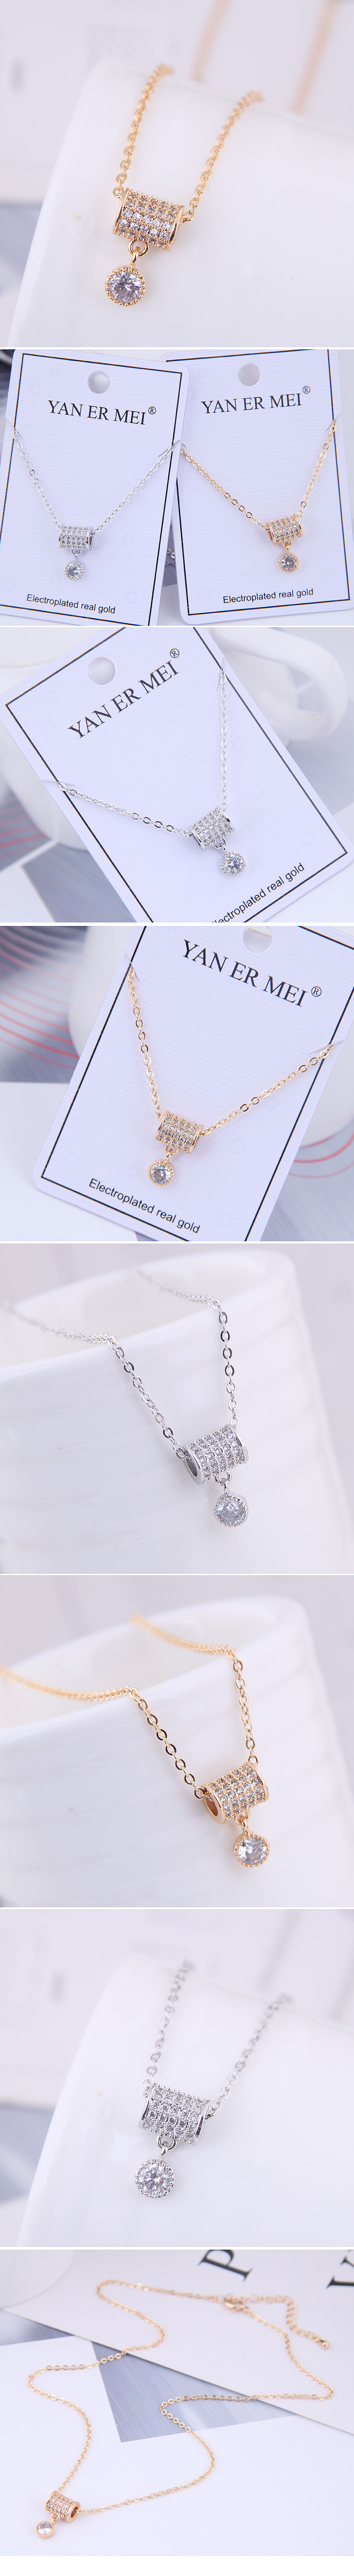 Copper & Zircon Necklace Korea NHSC200145